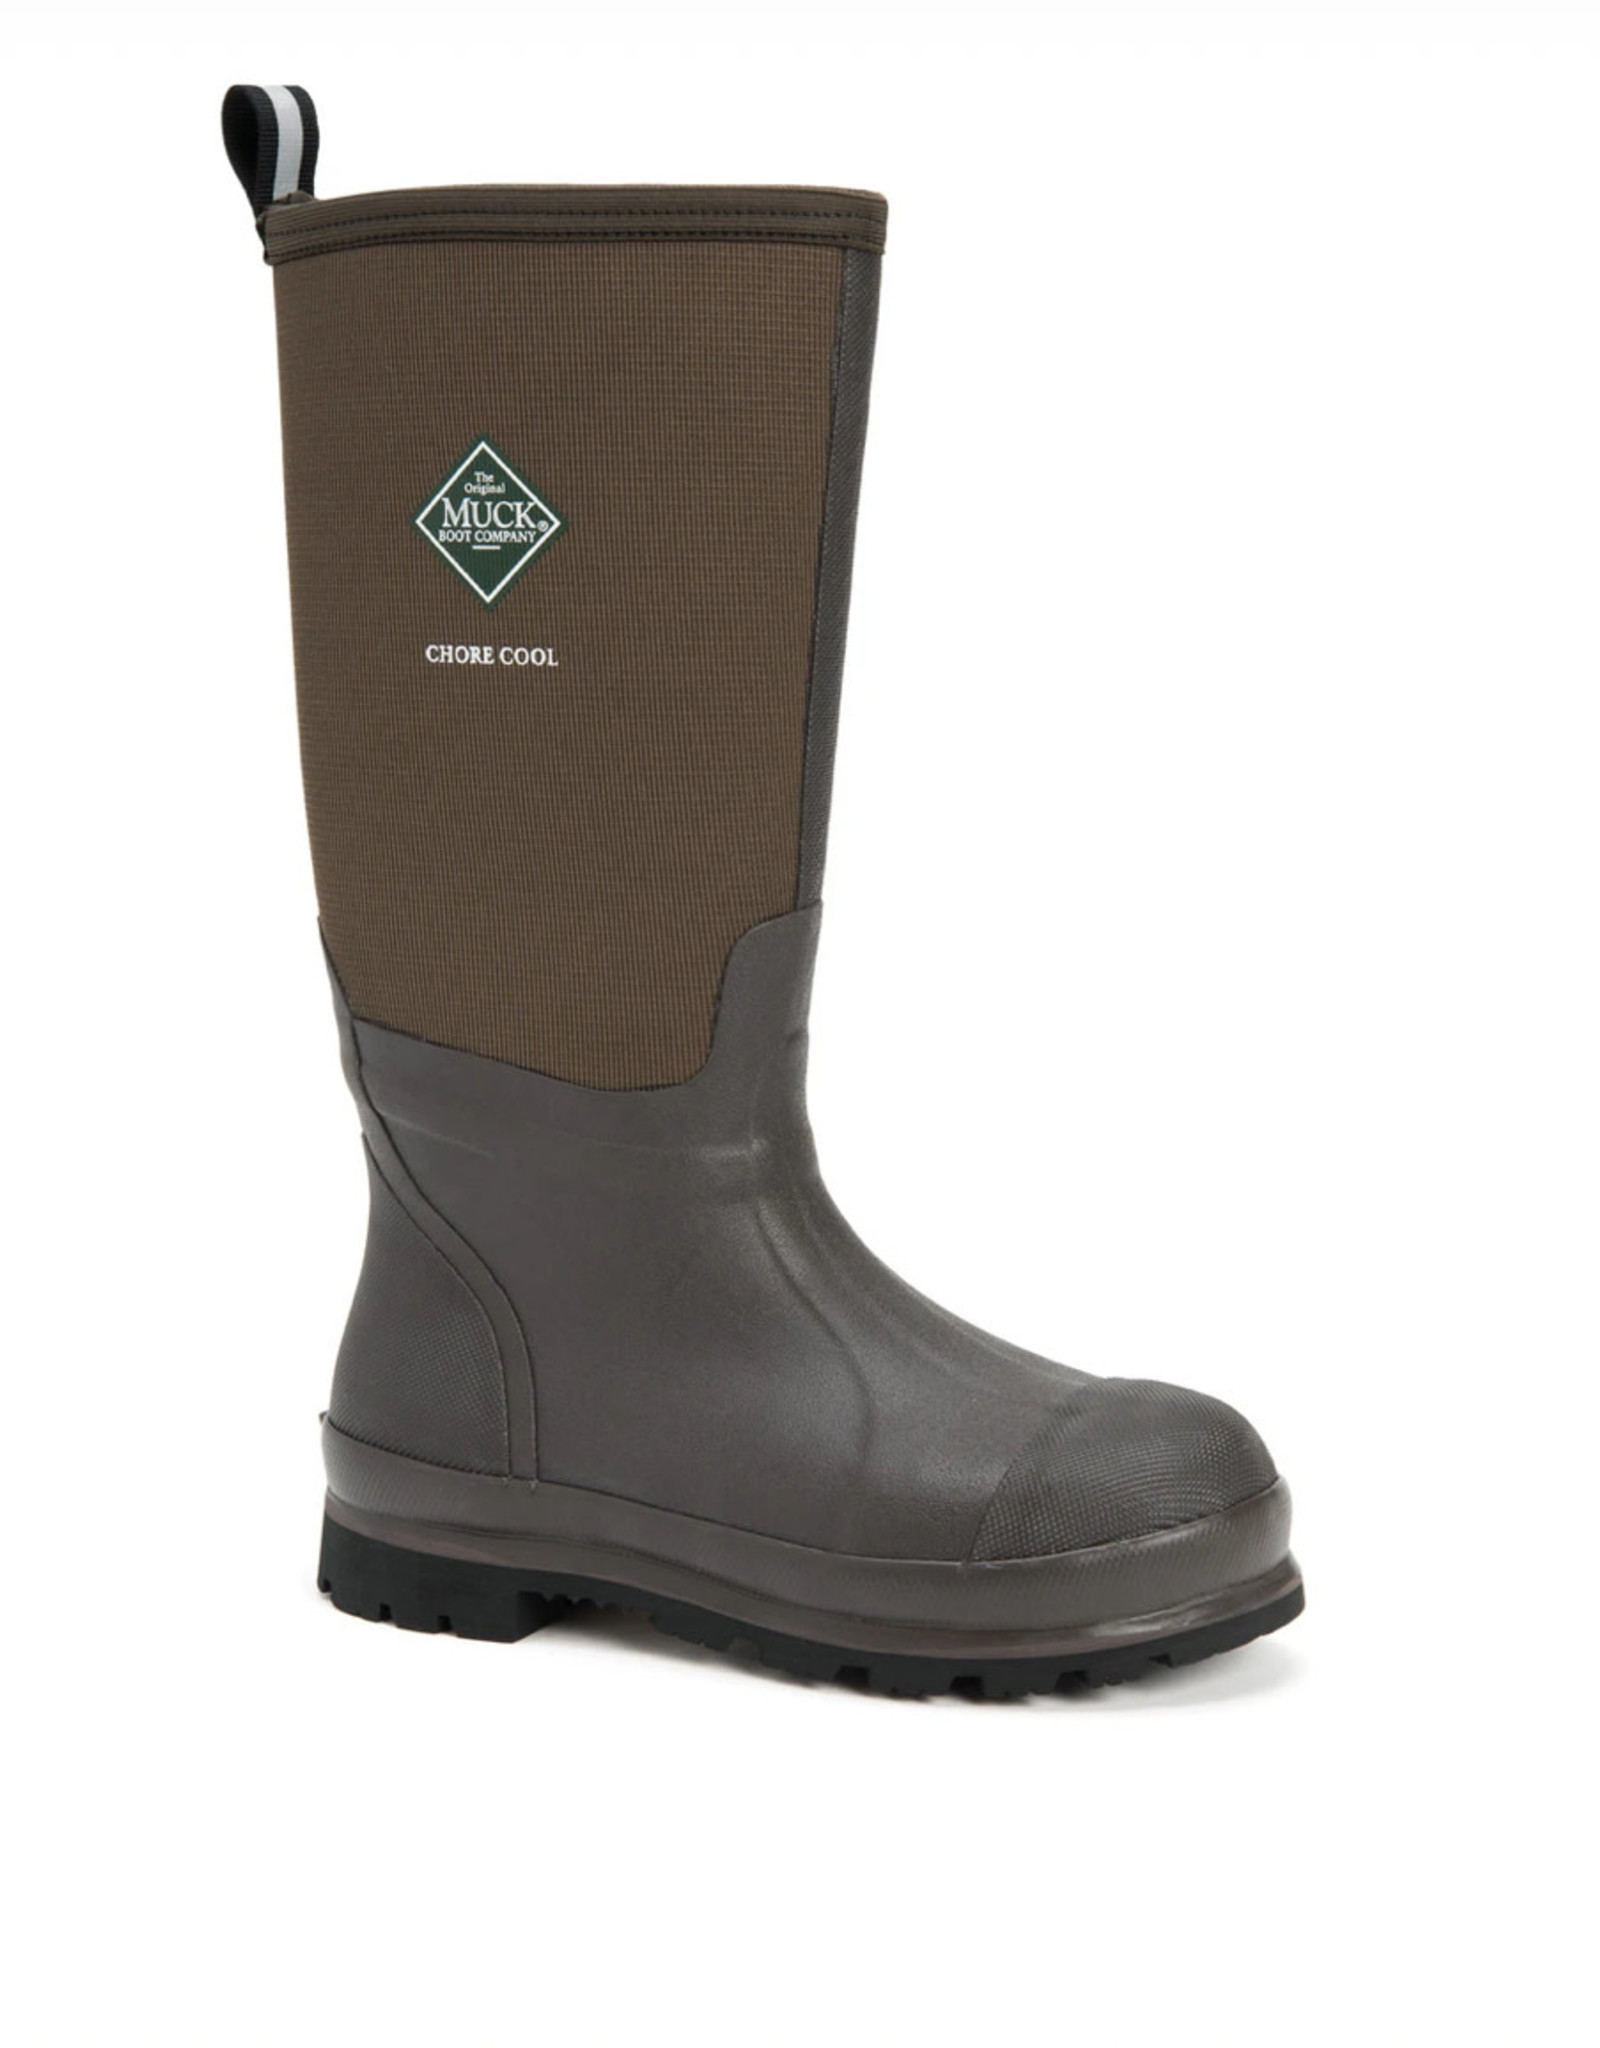 Muck Muck CHCT Chore Cool High All Conditions Work Boot Men's